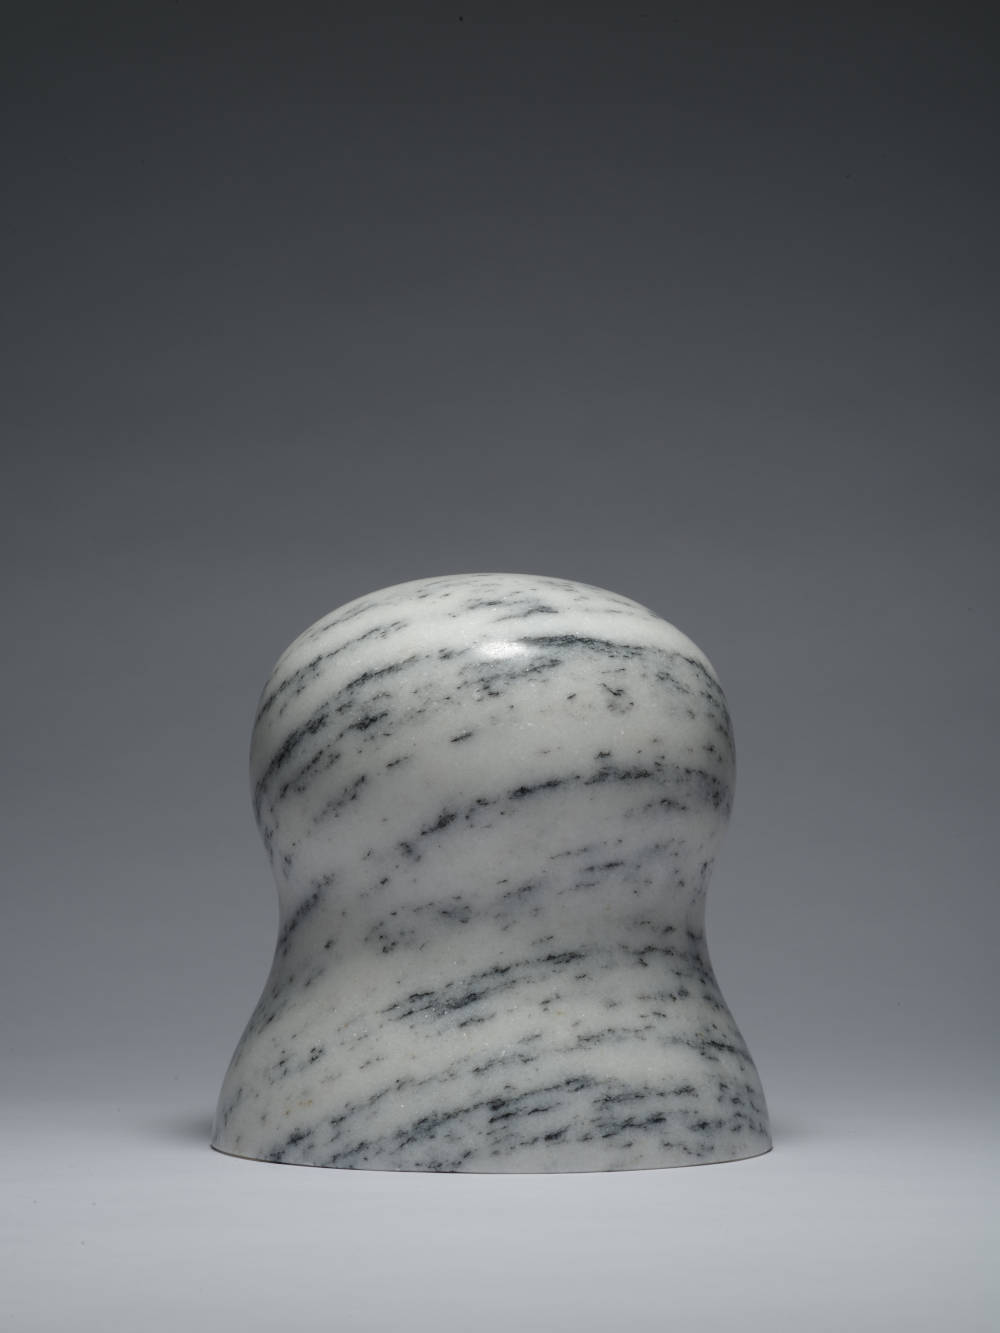 Zhao Zhao, Control 11, 2019. Natural marble 7.87 x 7.68 x 7.68 in (20.0 x 19.5 x 19.5 cm) Courtesy of the artist and Roberts Projects, Los Angeles, California